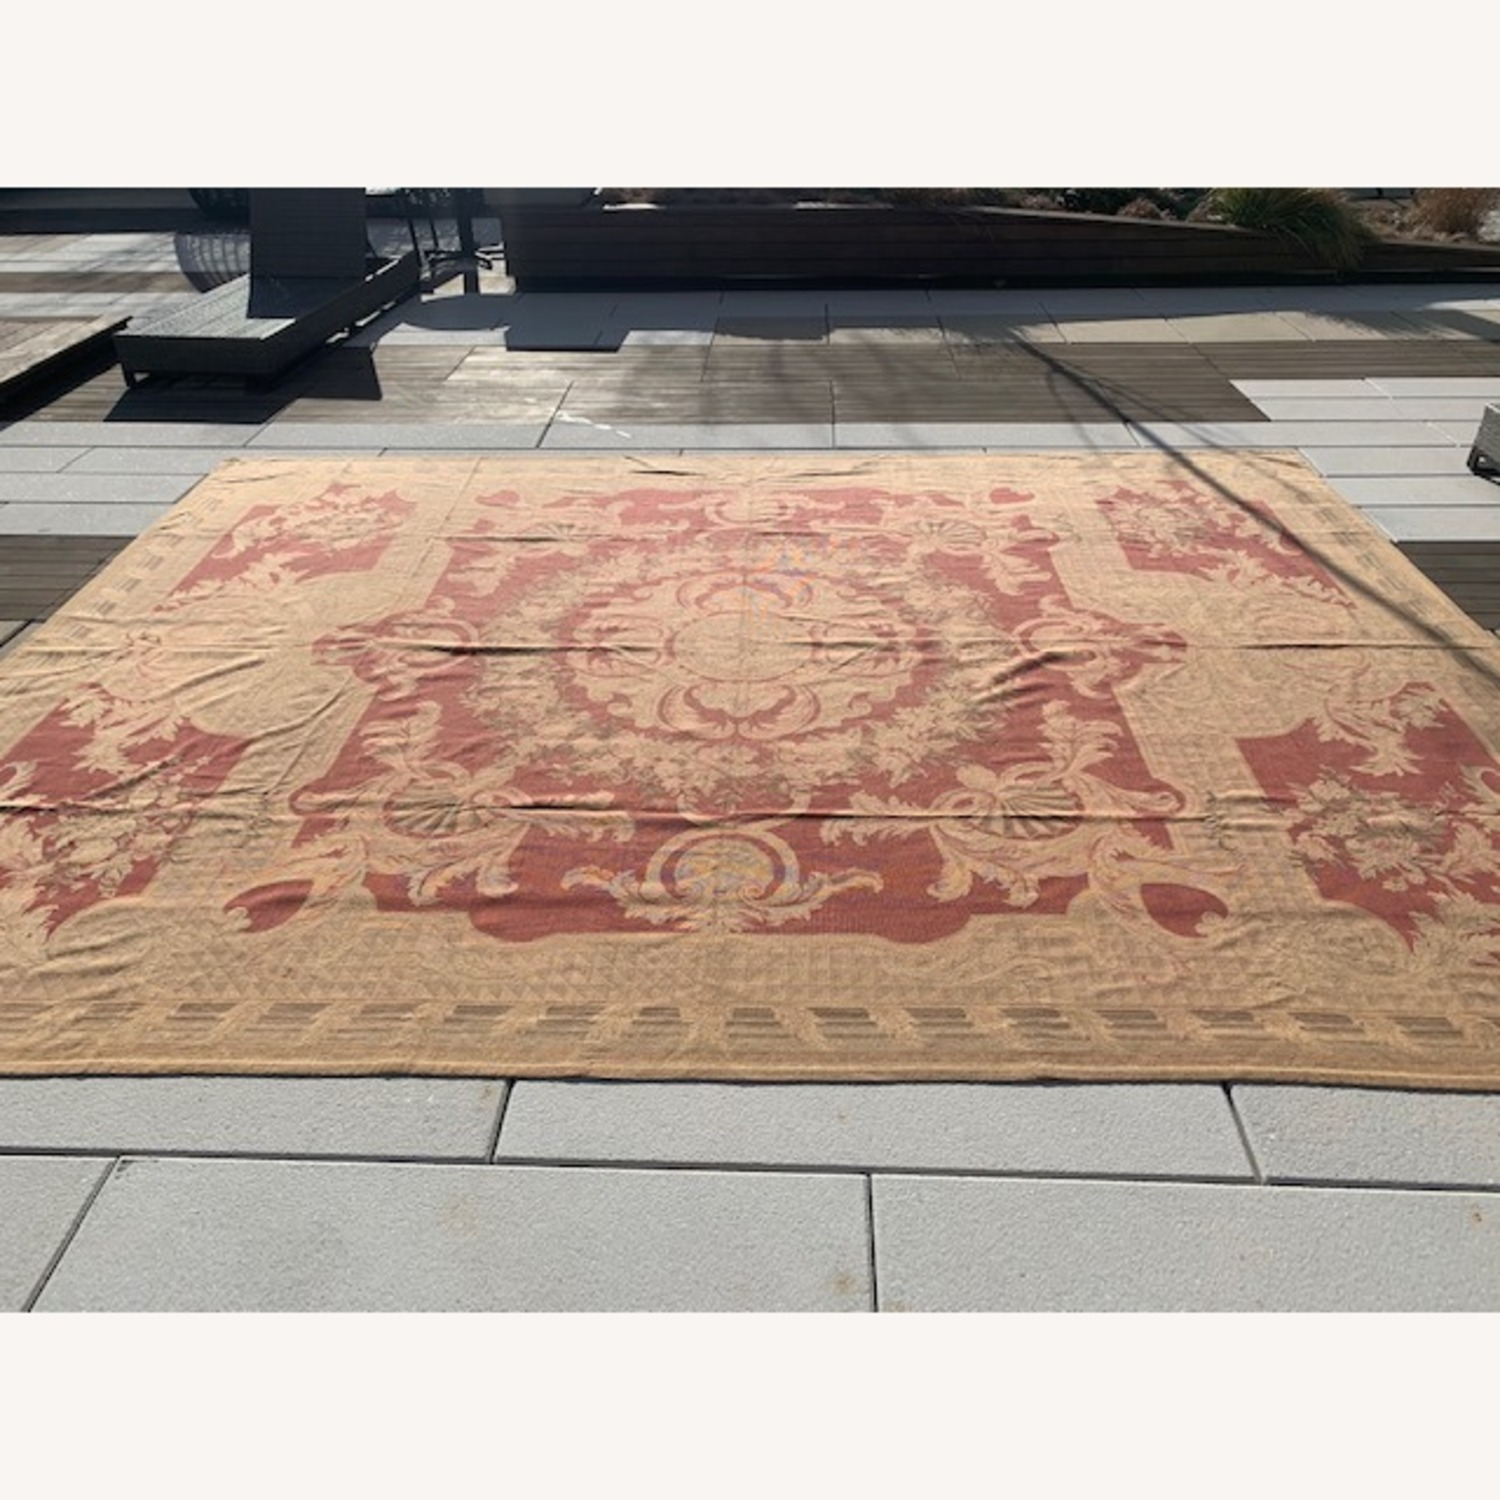 Vintage Aubusson flat weave Red and Tan rug - image-2